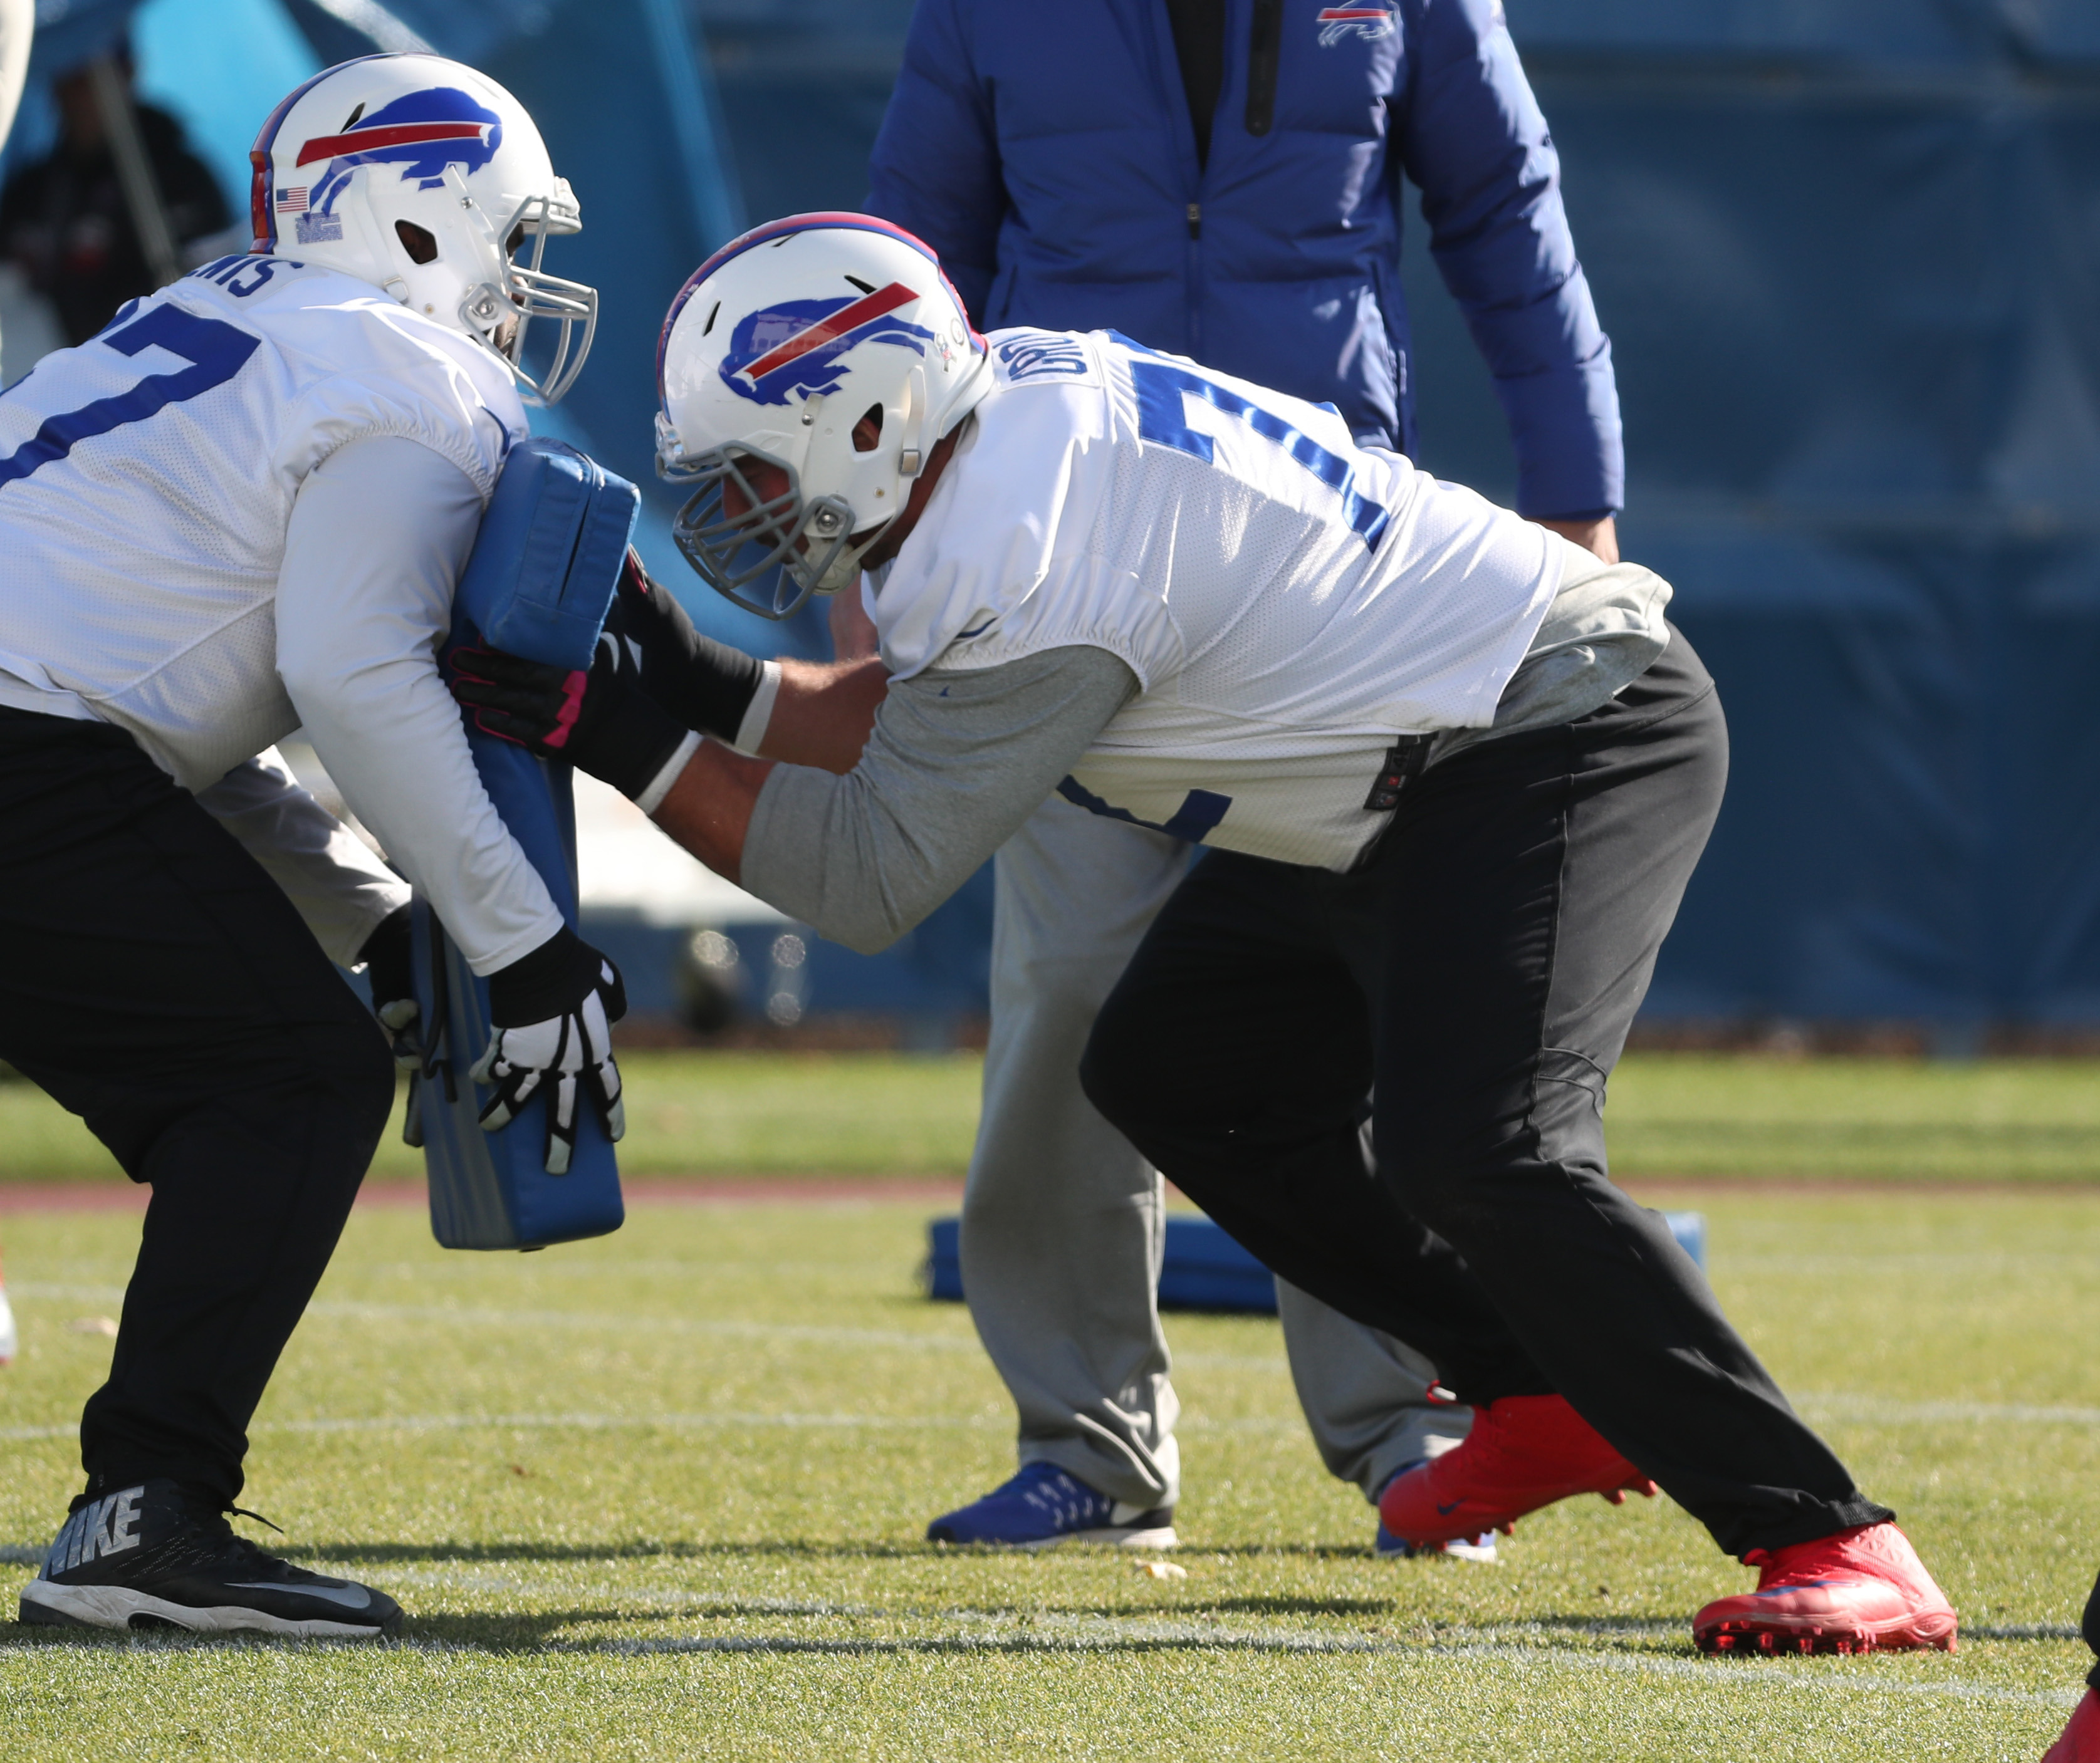 Buffalo Bills guard Ryan Groy (72) works on his footwork and blocking technique during practice at ADPRO Sports Training Center  in N.Y. on Monday, Nov. 14, 2016.  (James P. McCoy/Buffalo News)